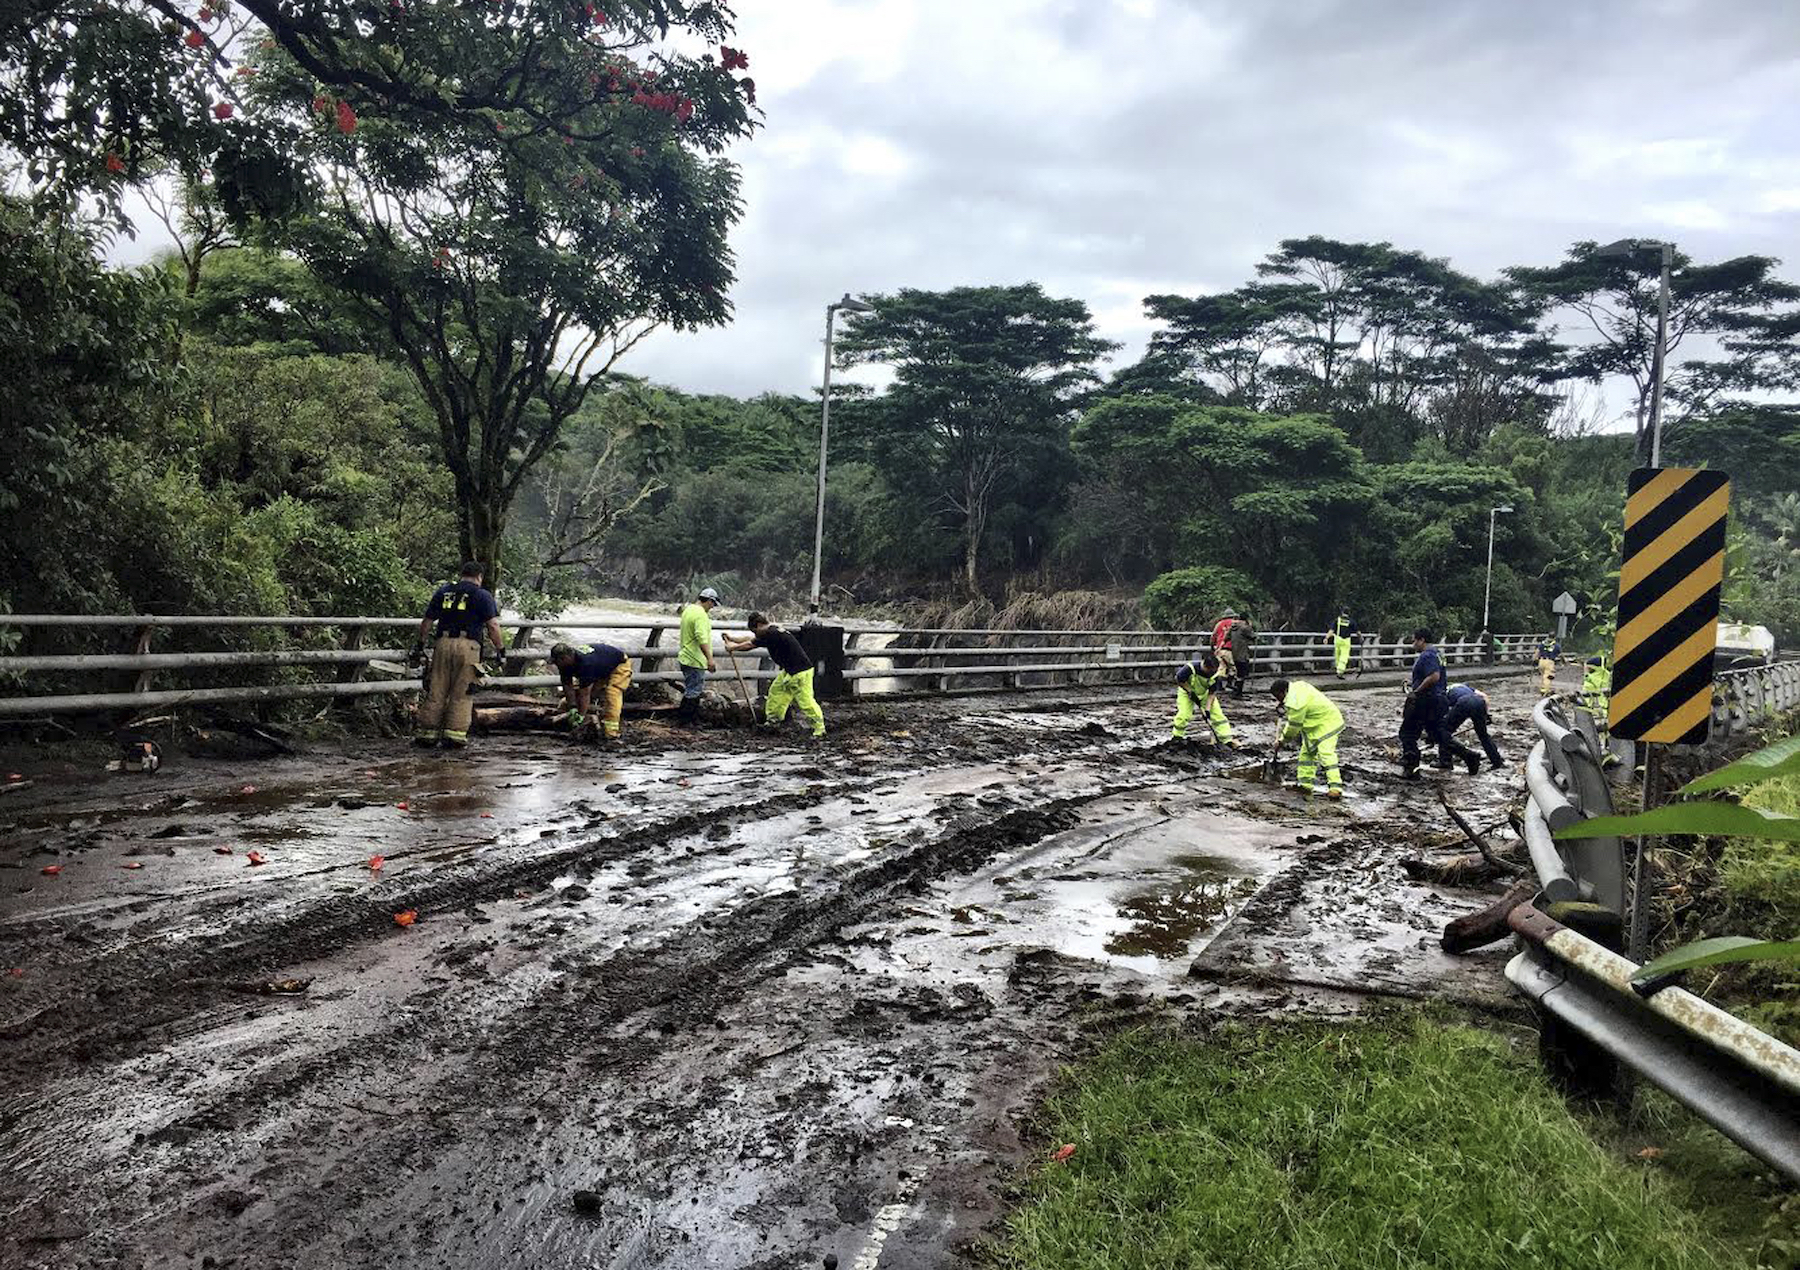 "<div class=""meta image-caption""><div class=""origin-logo origin-image ap""><span>AP</span></div><span class=""caption-text"">In this photo provided by Jessica Henricks, crews work at clearing damage from Hurricane Lane Friday, Aug. 24, 2018, near Hilo, Hawaii. (Jessica Henricks via AP)</span></div>"